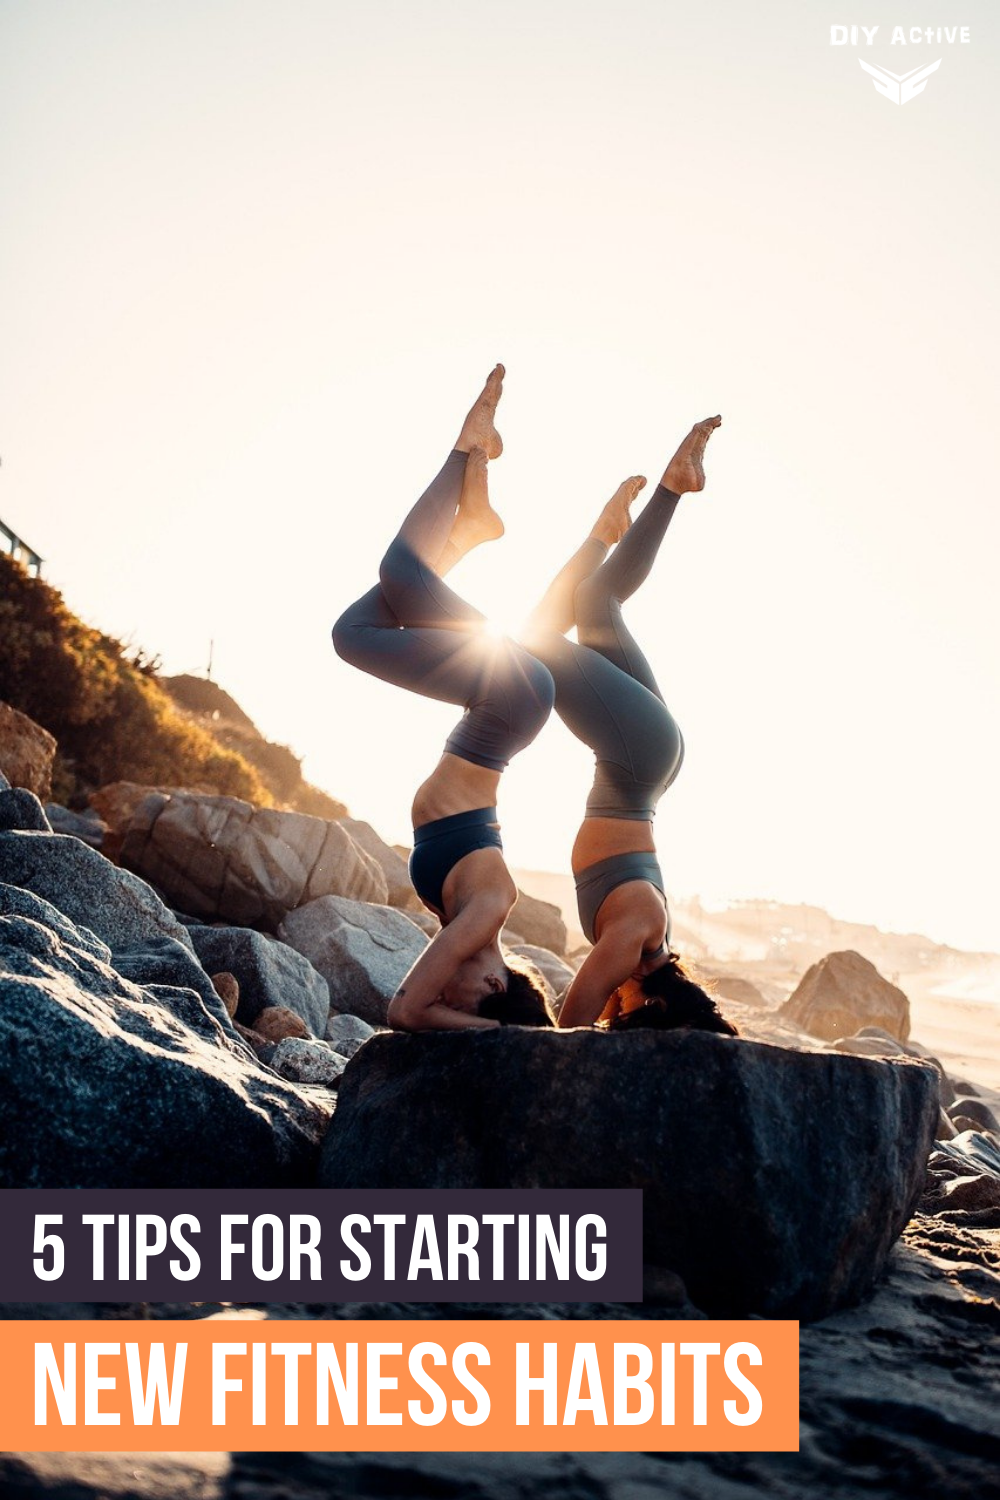 5 Tips For Starting and Sticking to New Fitness Habits